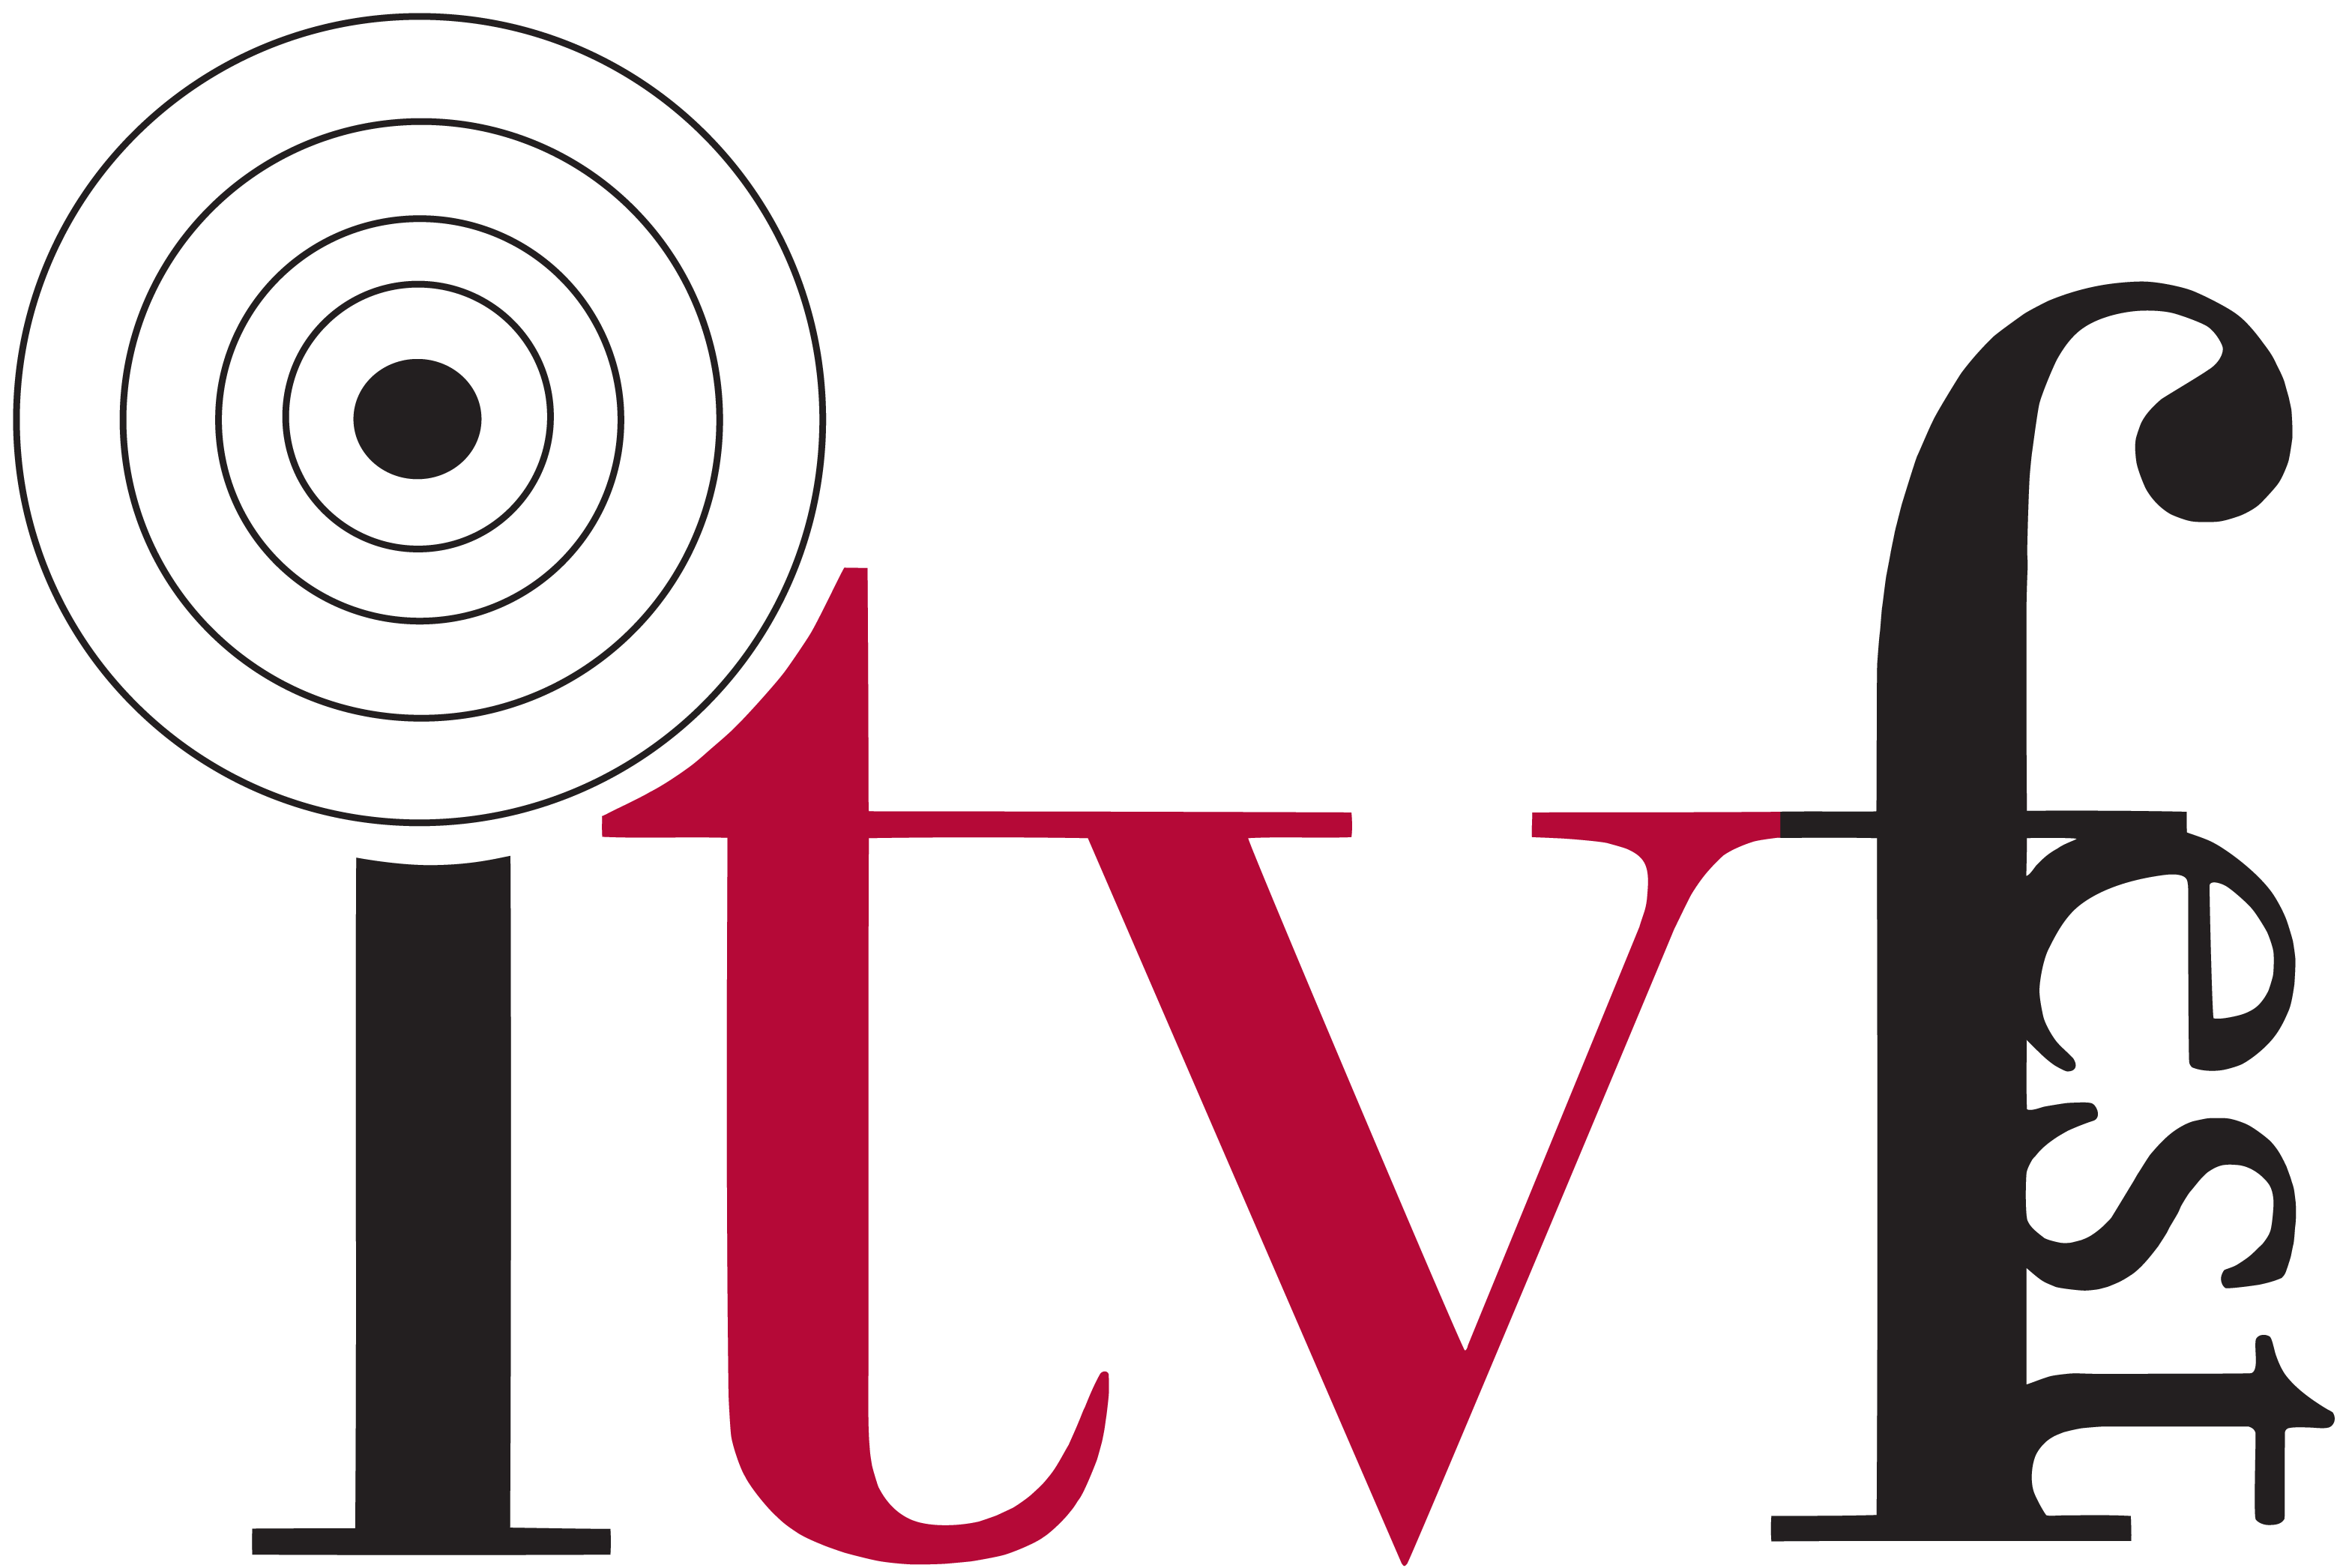 master_vector_itvf_logo_2.png